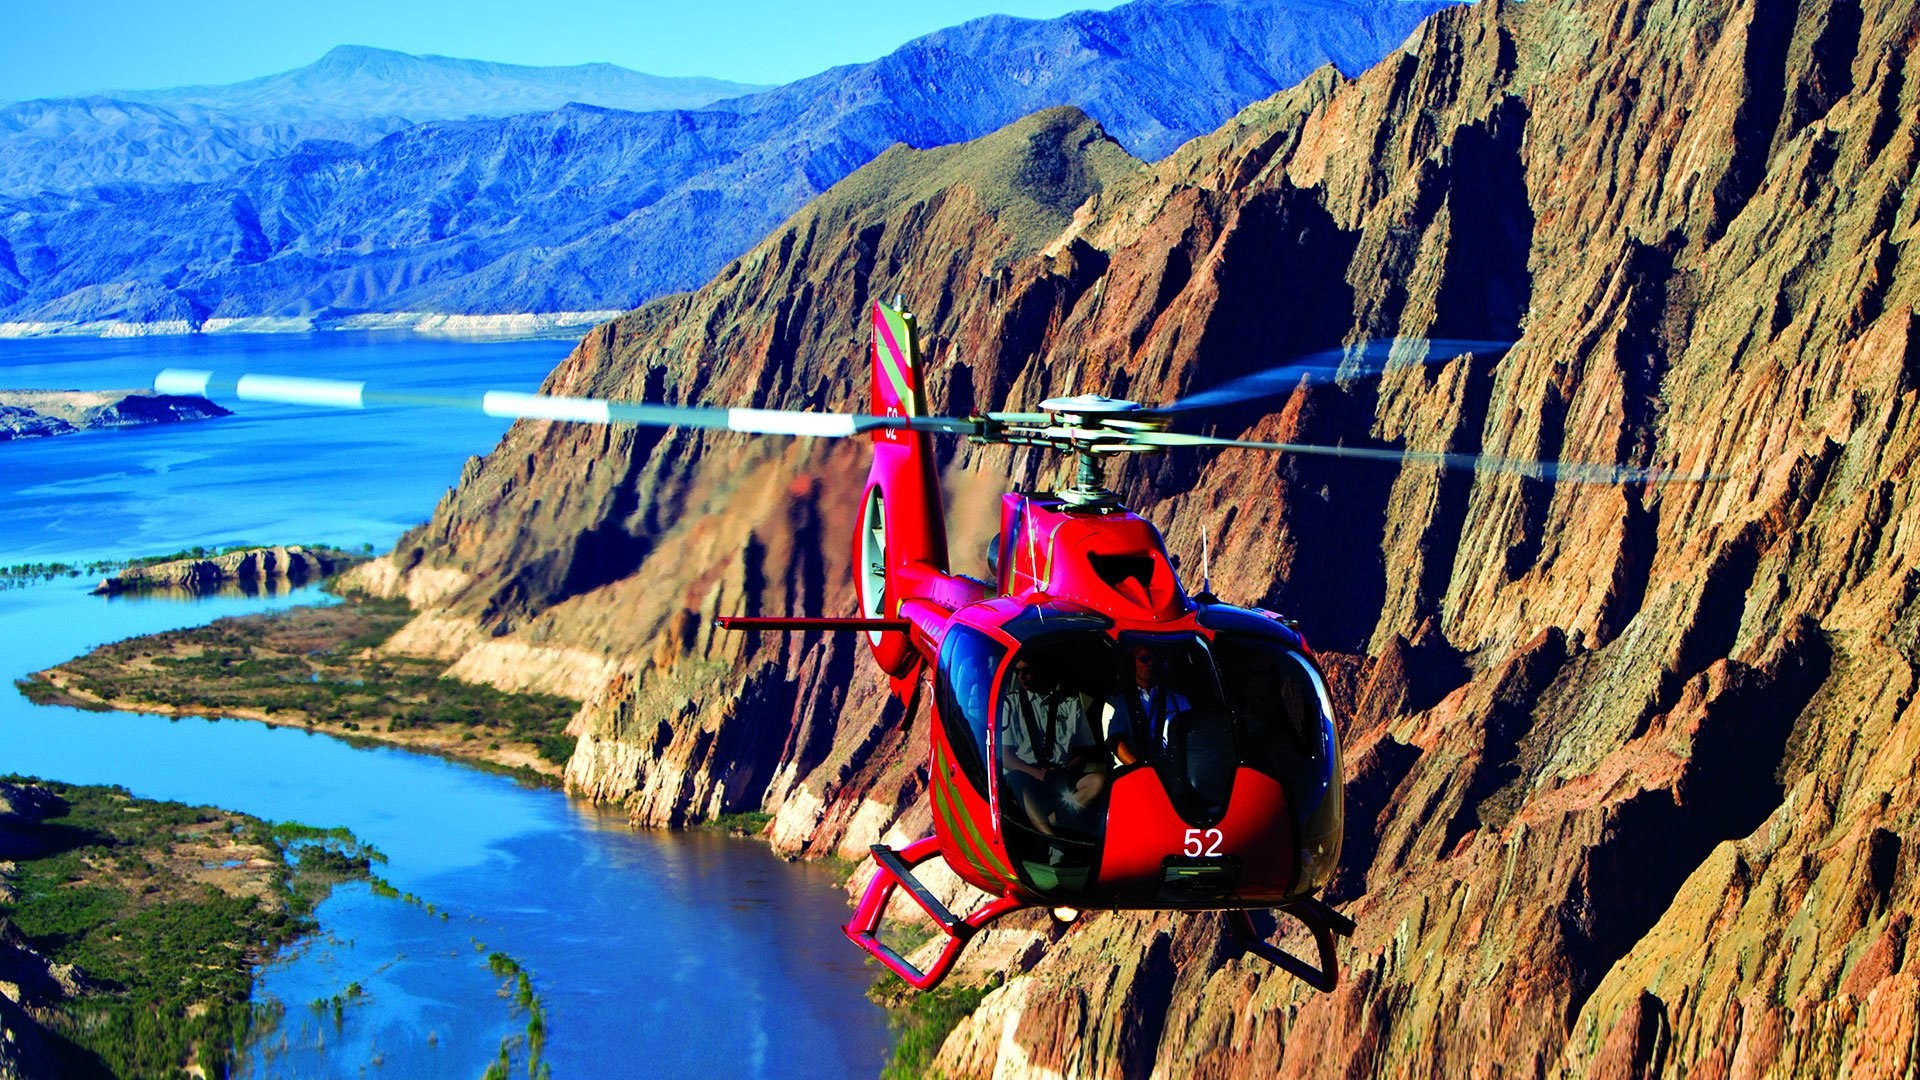 EC-130 helicopter with passengers flying over Lake Mead